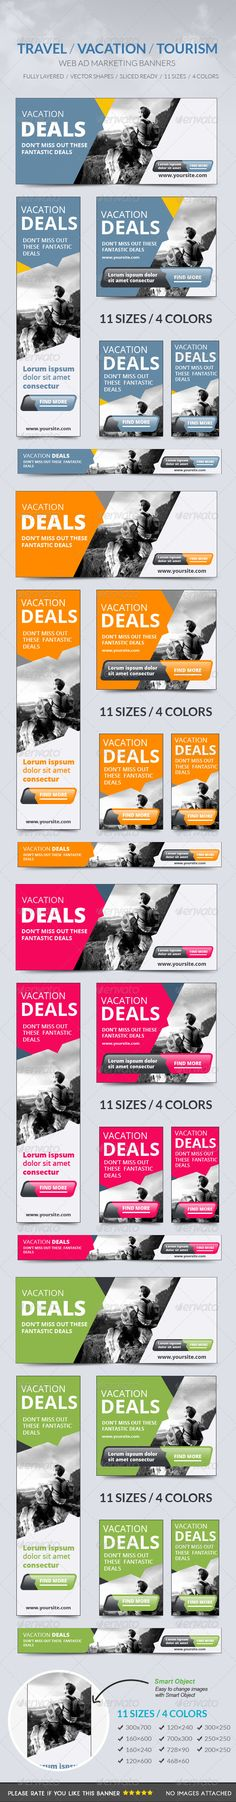 Travel Vacation Tourism Banner Template PSD | Buy and Download: http://graphicriver.net/item/travel-vacation-tourism-banner-/8715190?WT.ac=category_thumb&WT.z_author=msrashdi&ref=ksioks